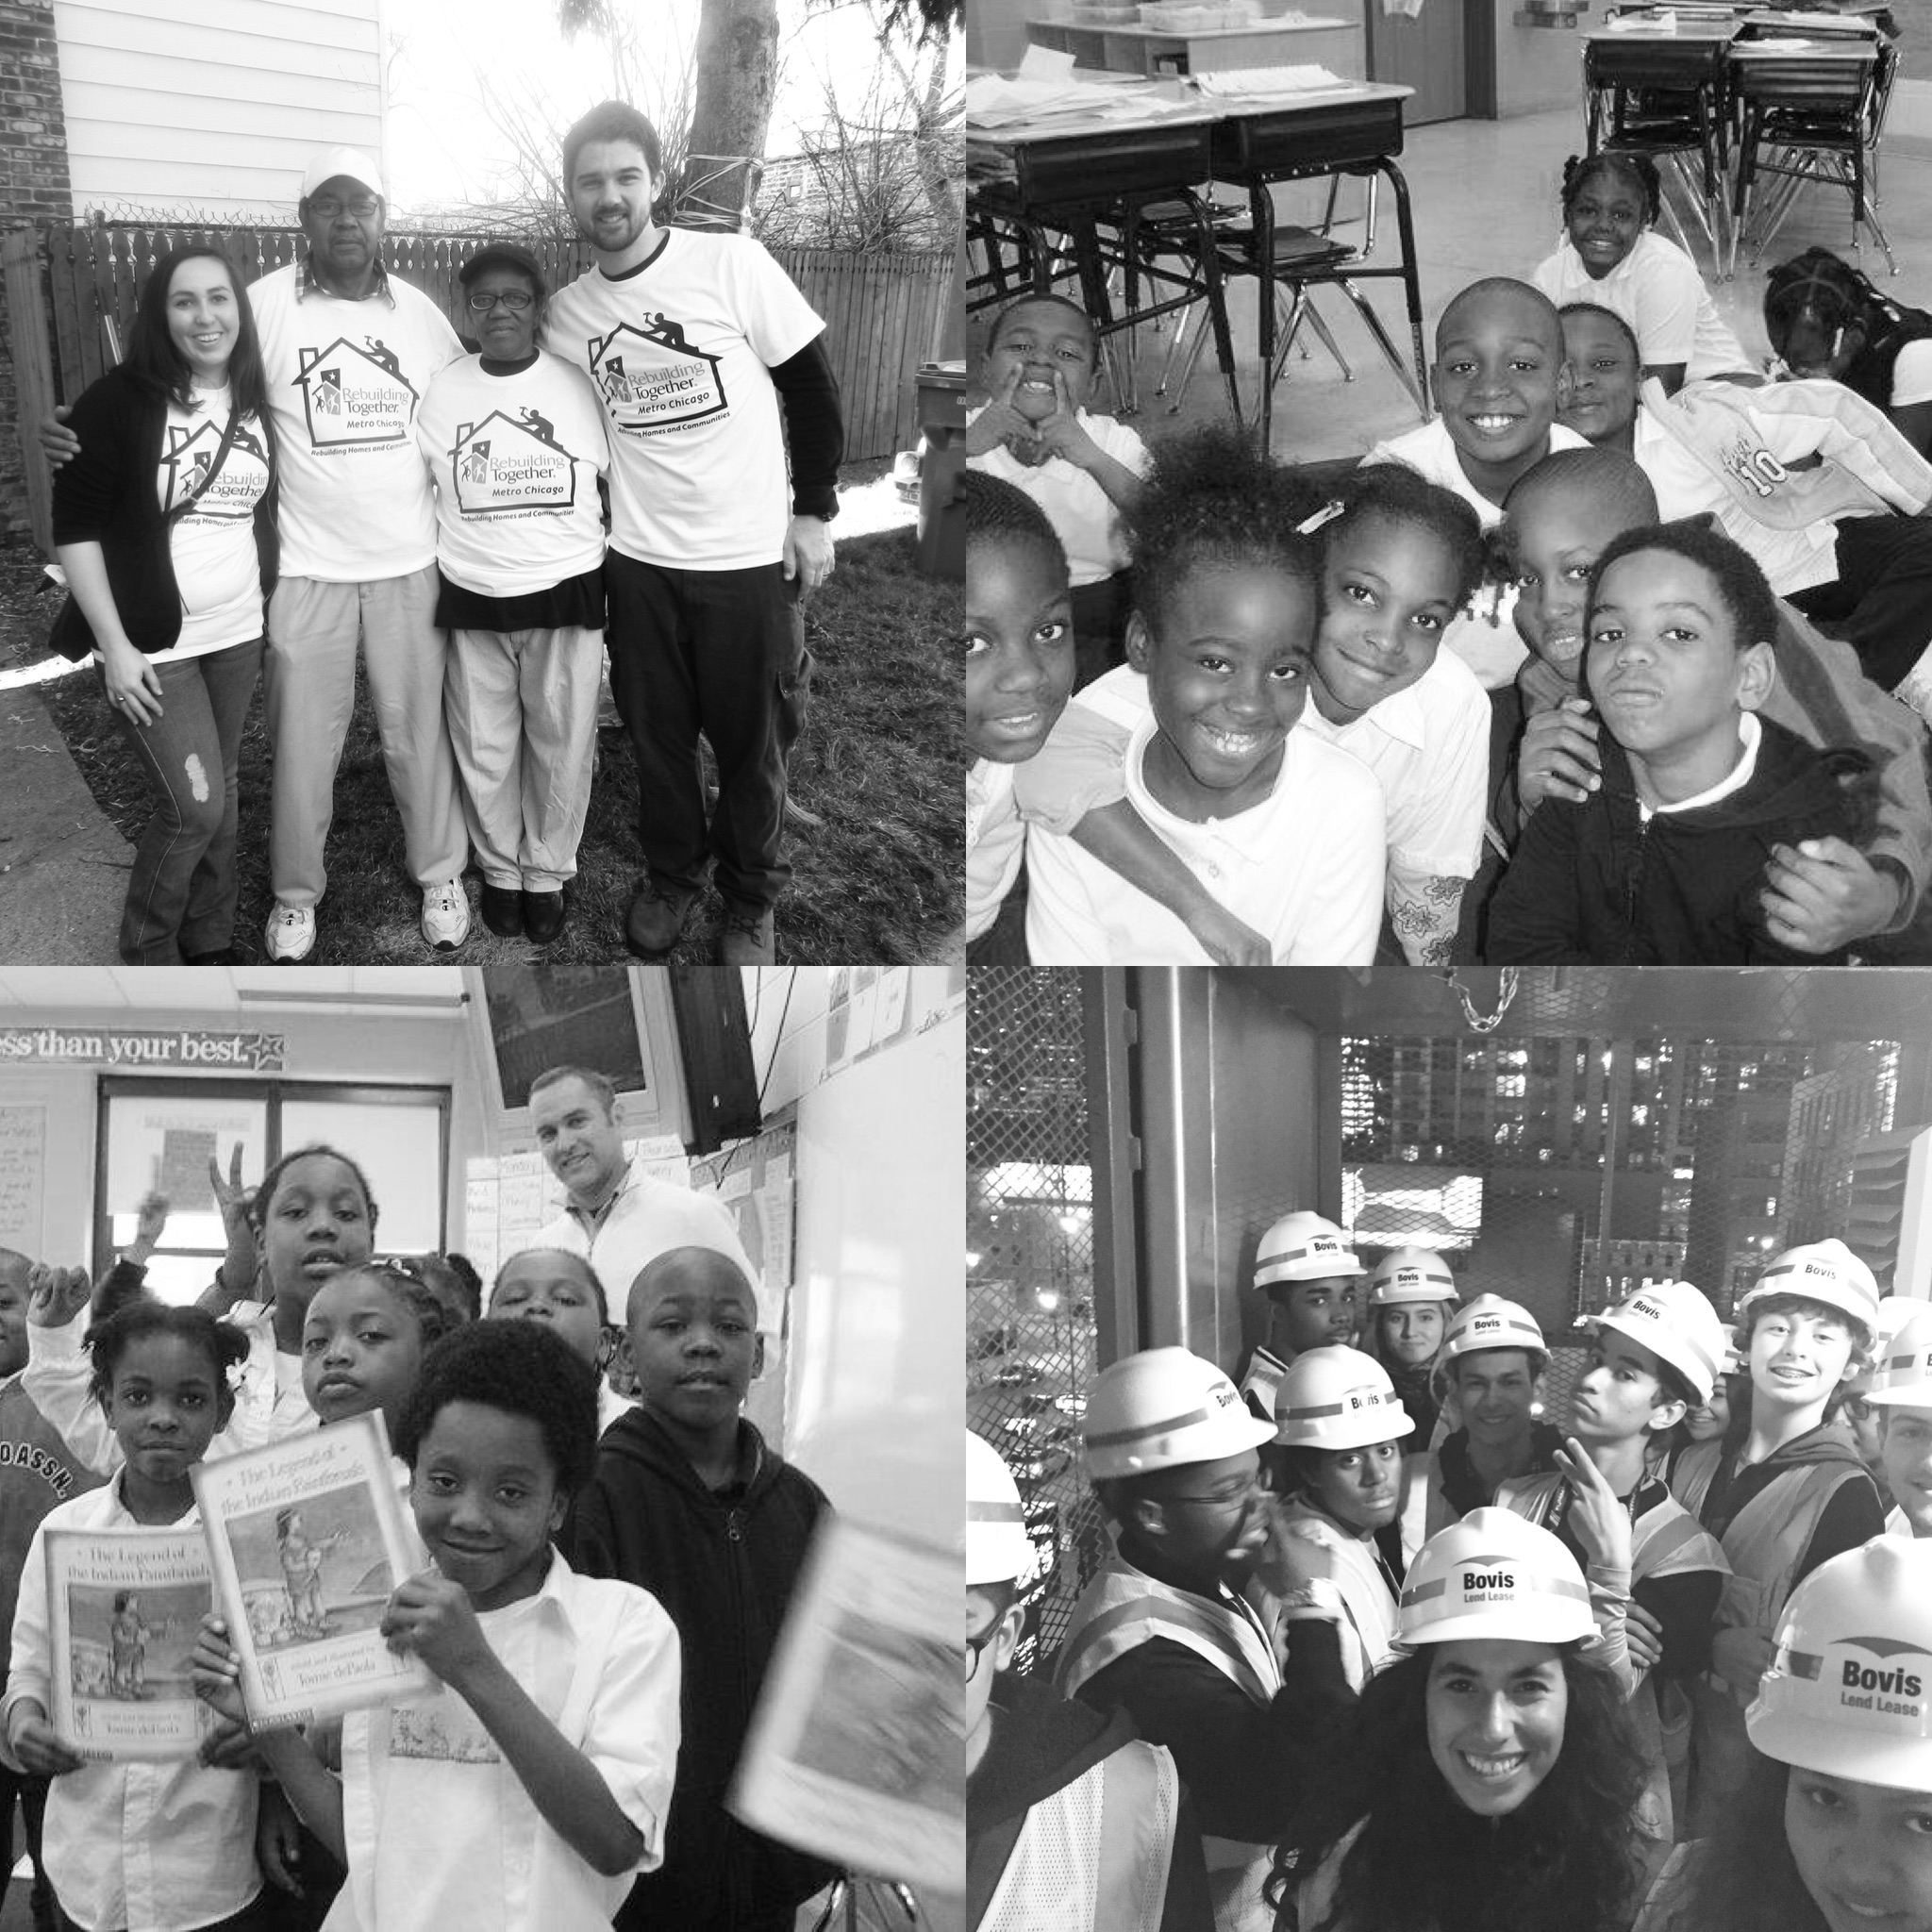 ECF runs entirely on donations and fundraising. We rely on your generous support to empower and improve the lives all around the Chicagoland area. - HELP US BUILD A BRIGHTER FUTURE.